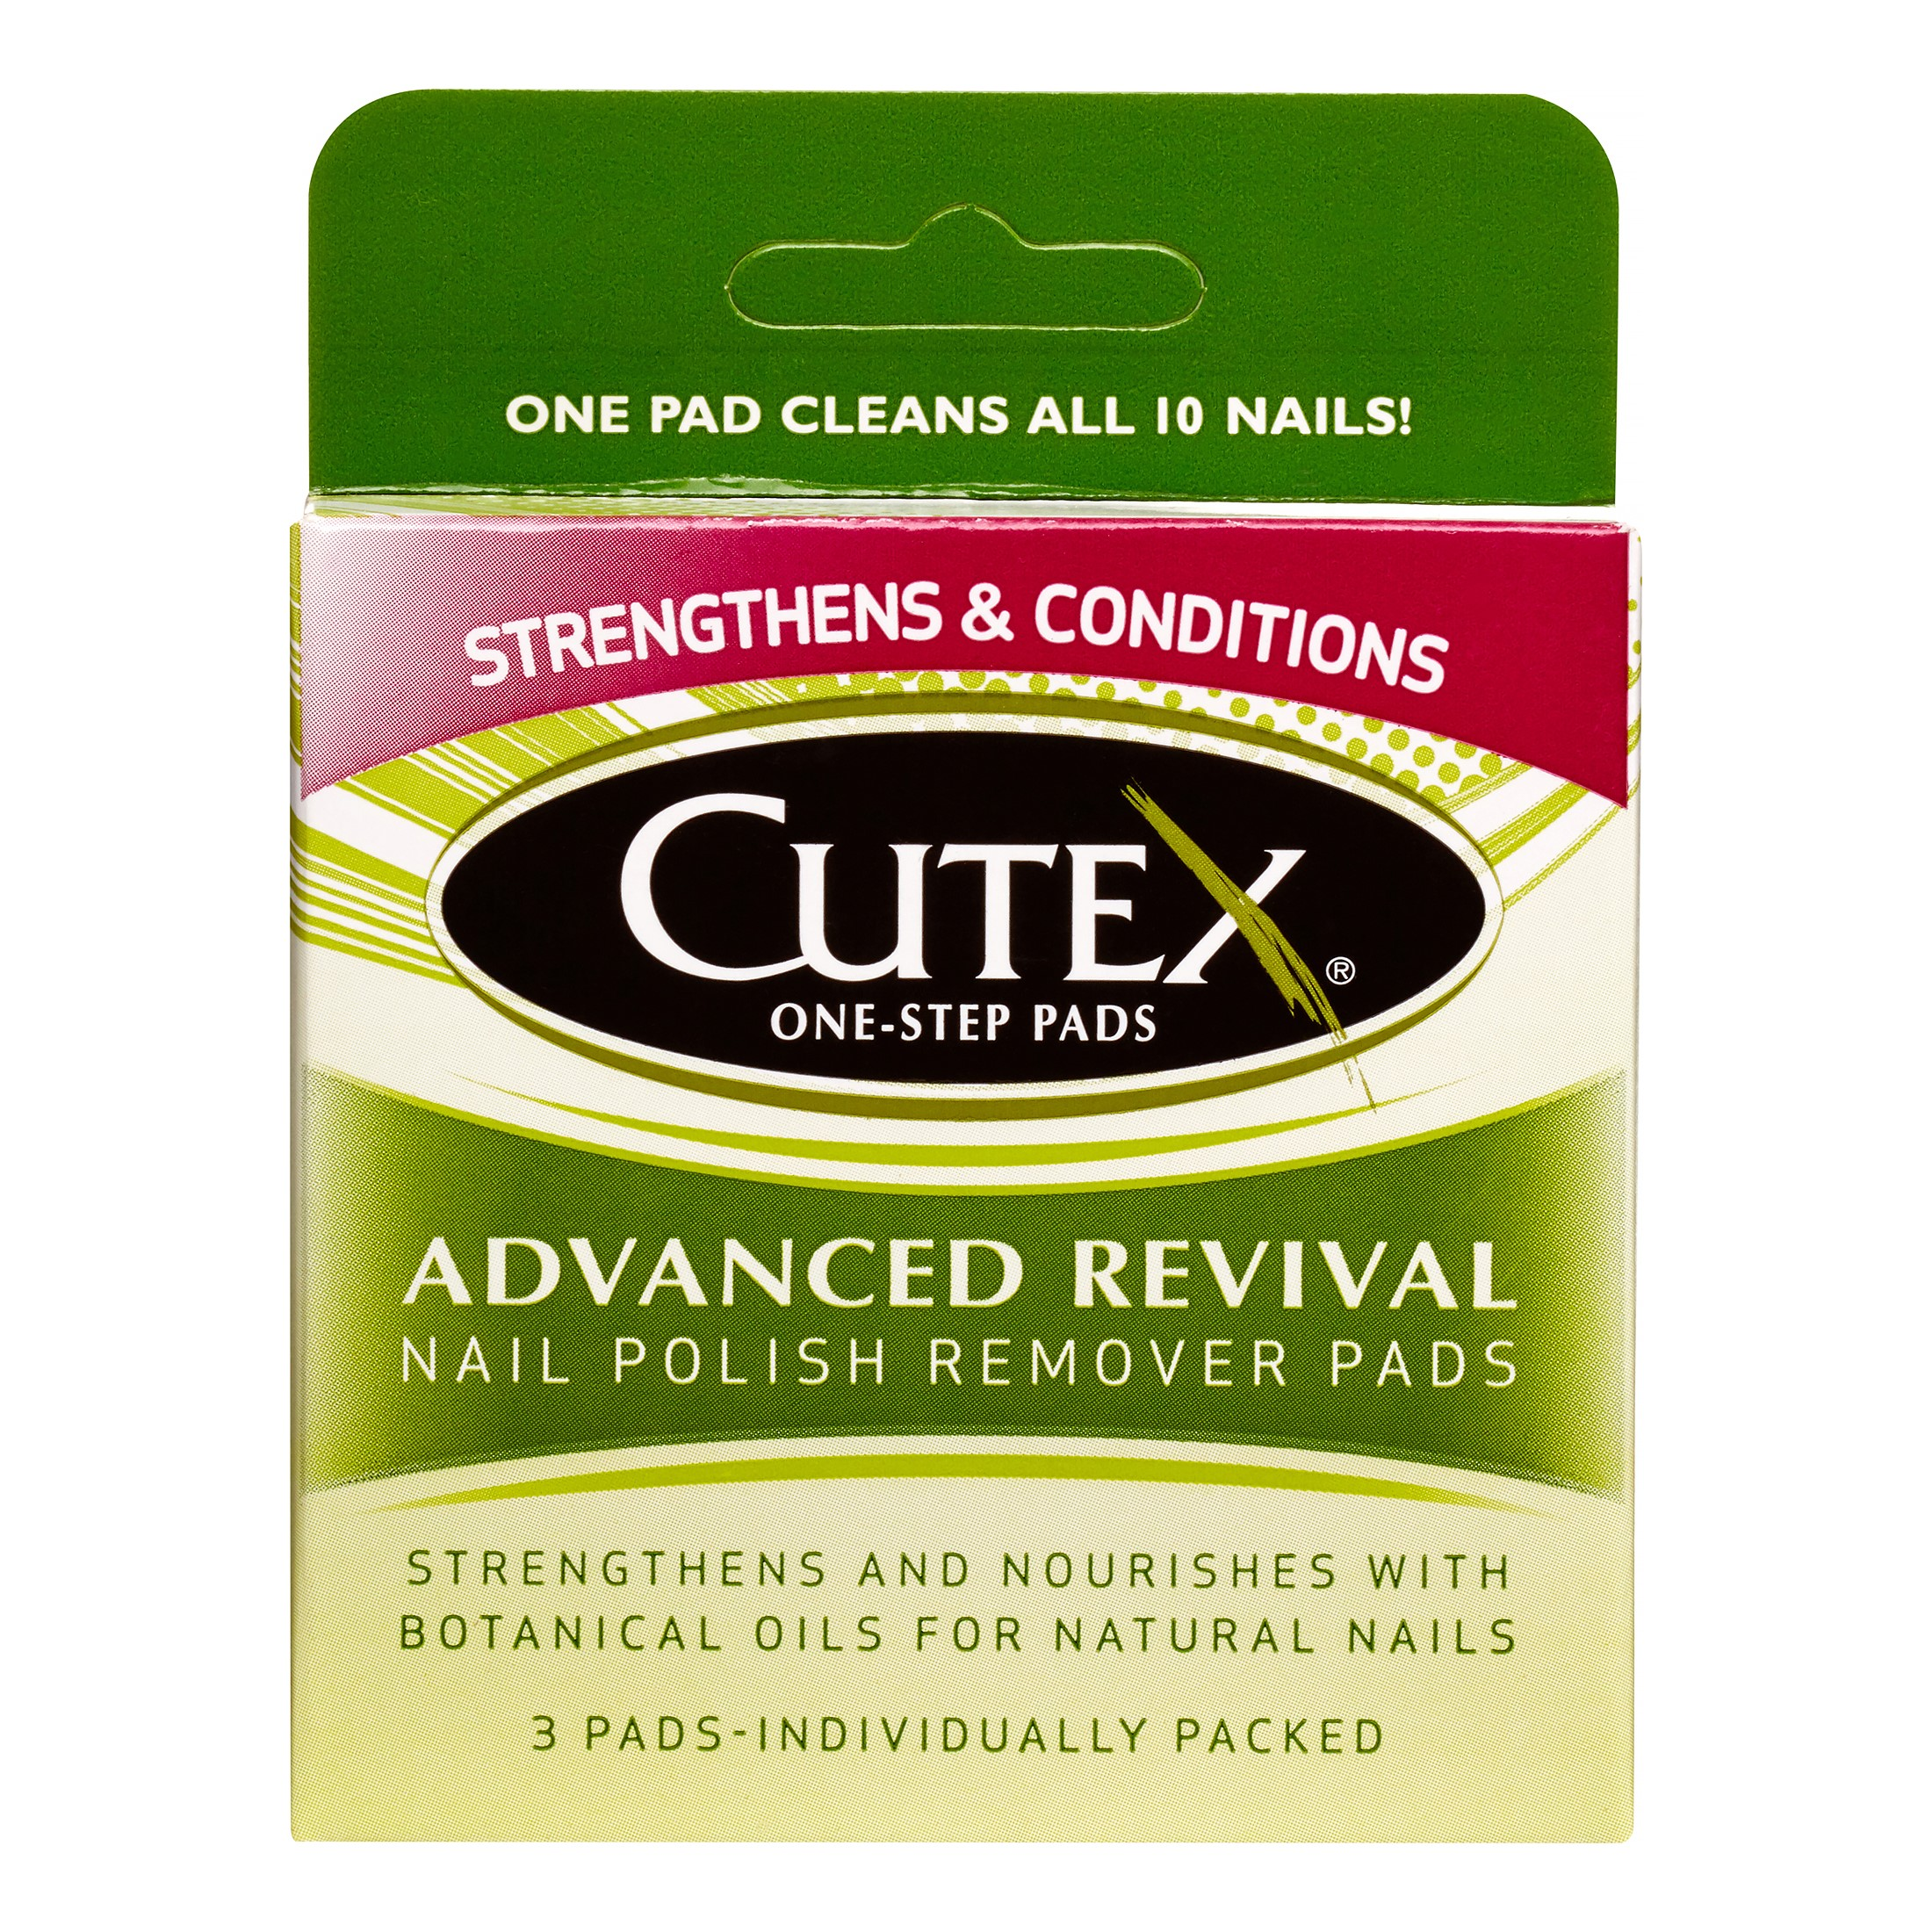 Cutex One Step Pads Nail Polish Remover Pads, Advanced Revival, 3 Ct